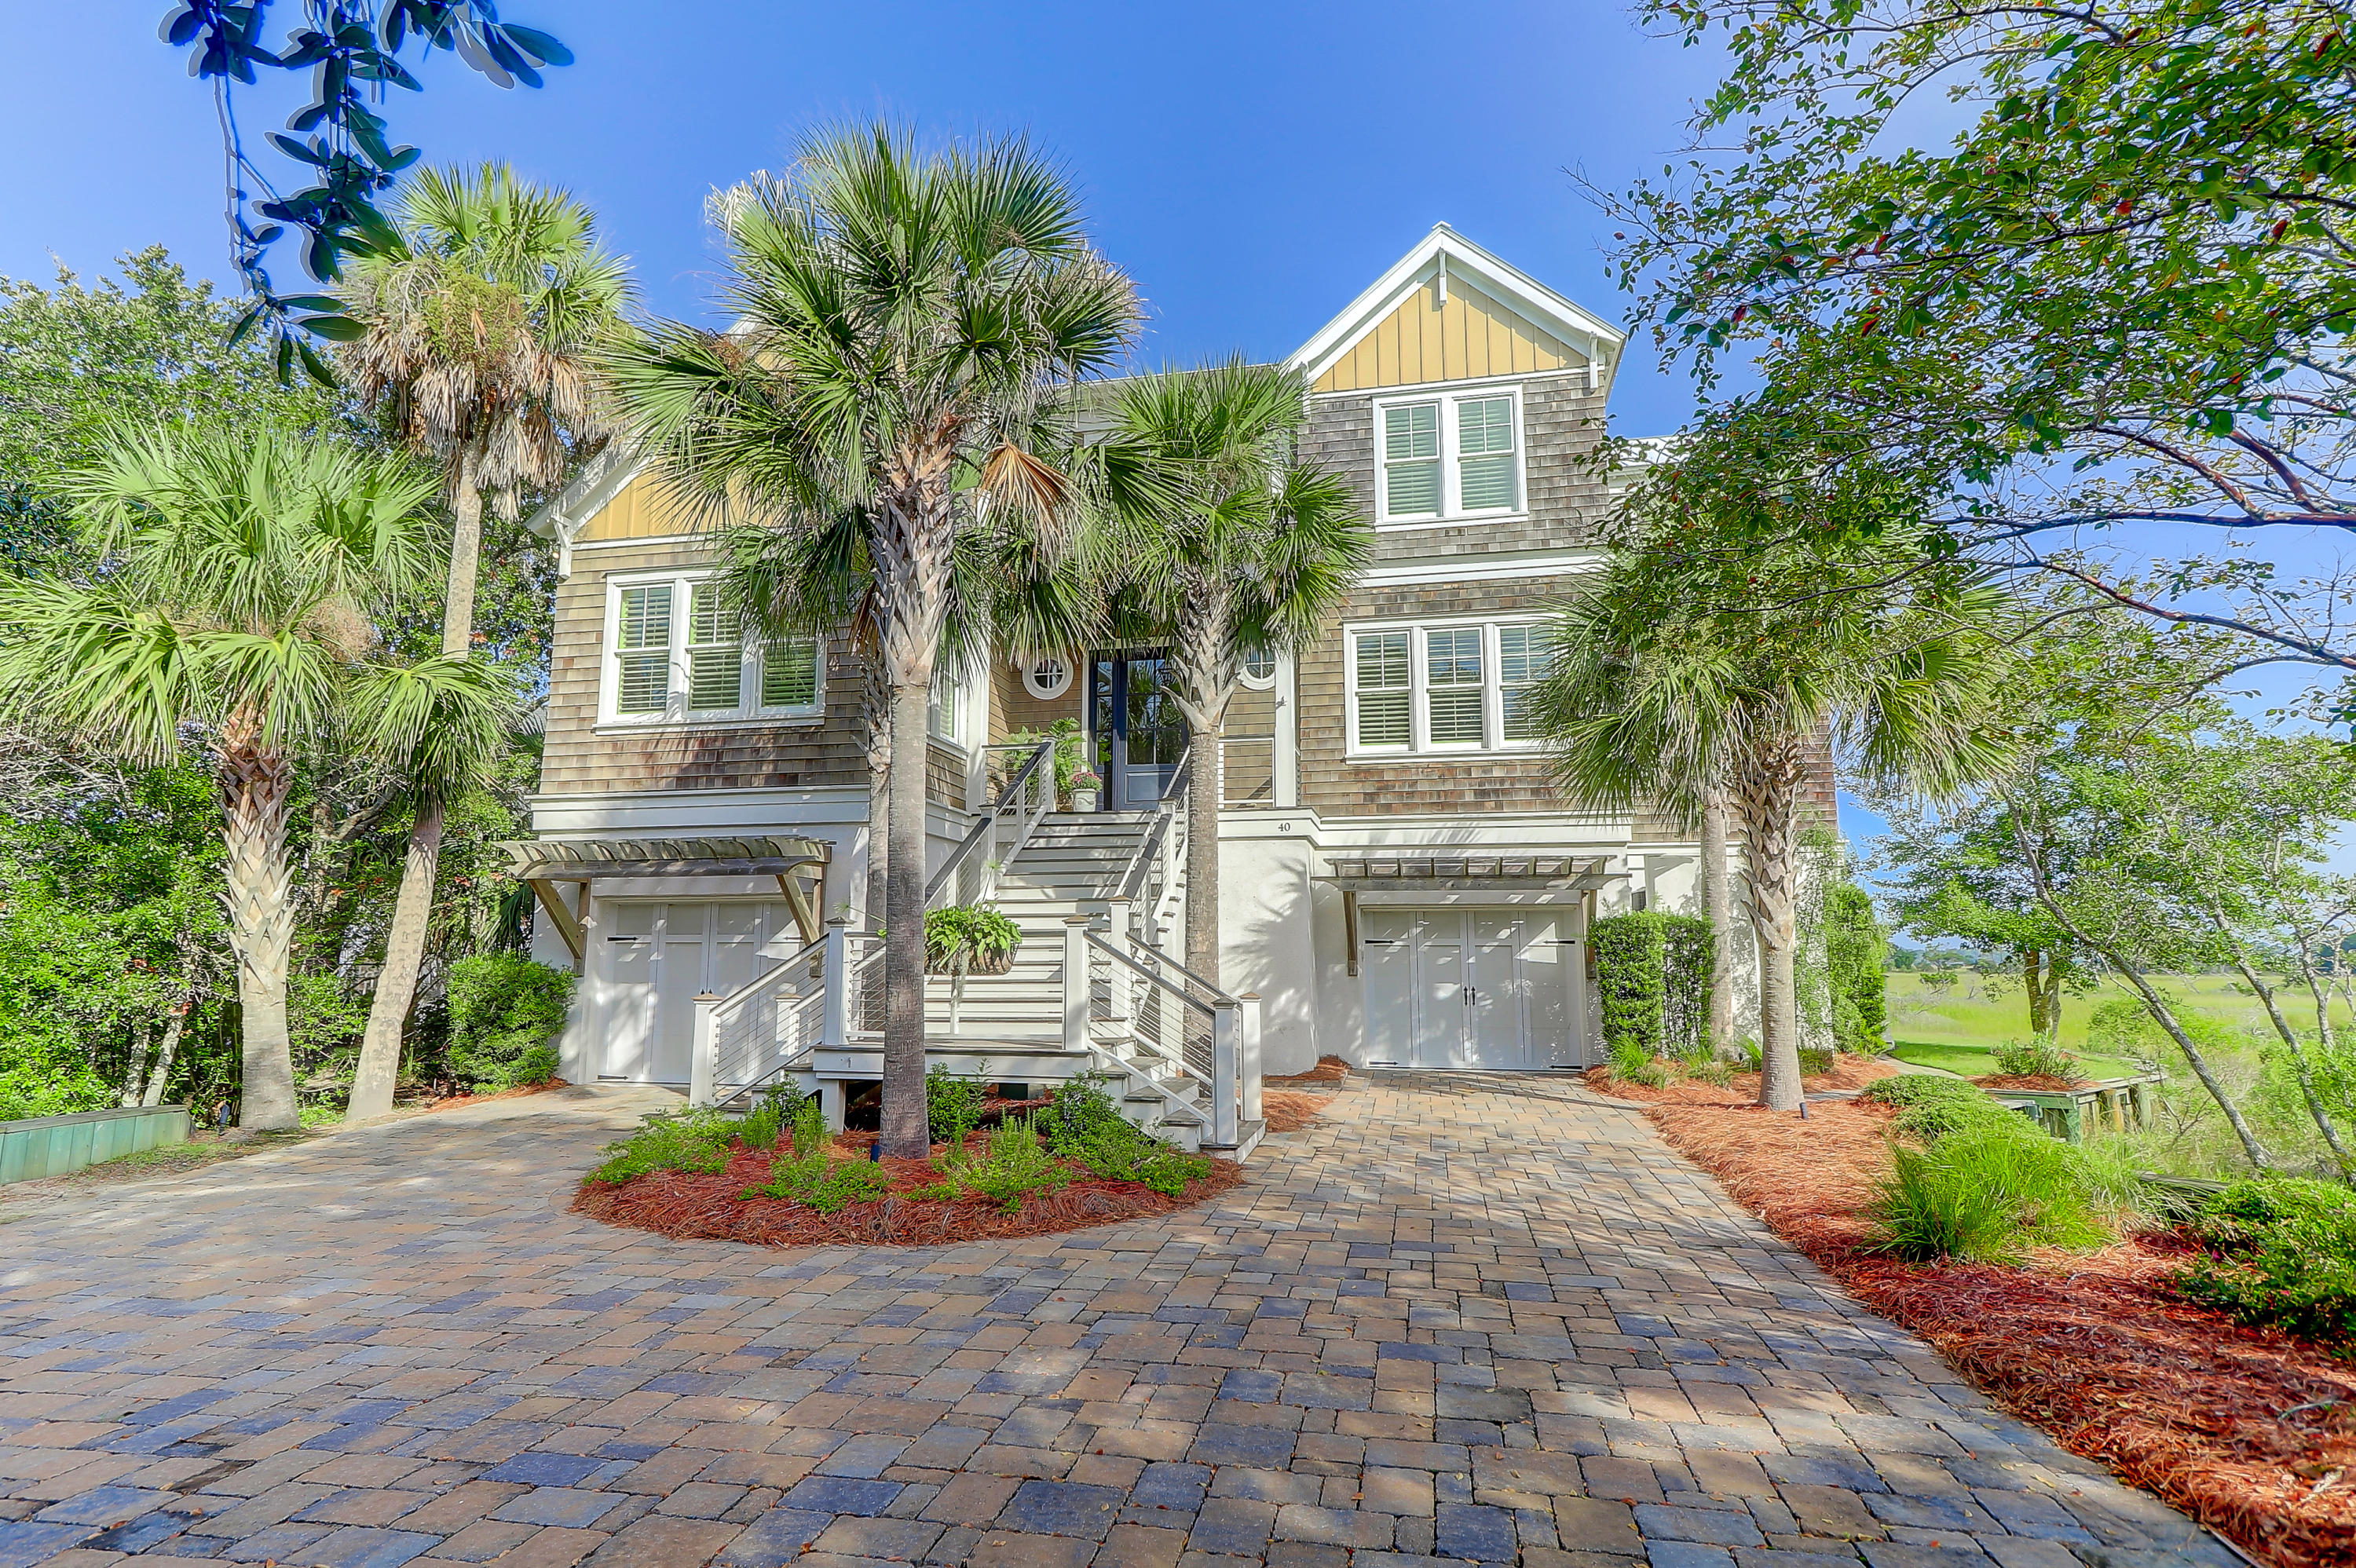 Wild Dunes Homes For Sale - 40 Seagrass, Isle of Palms, SC - 3